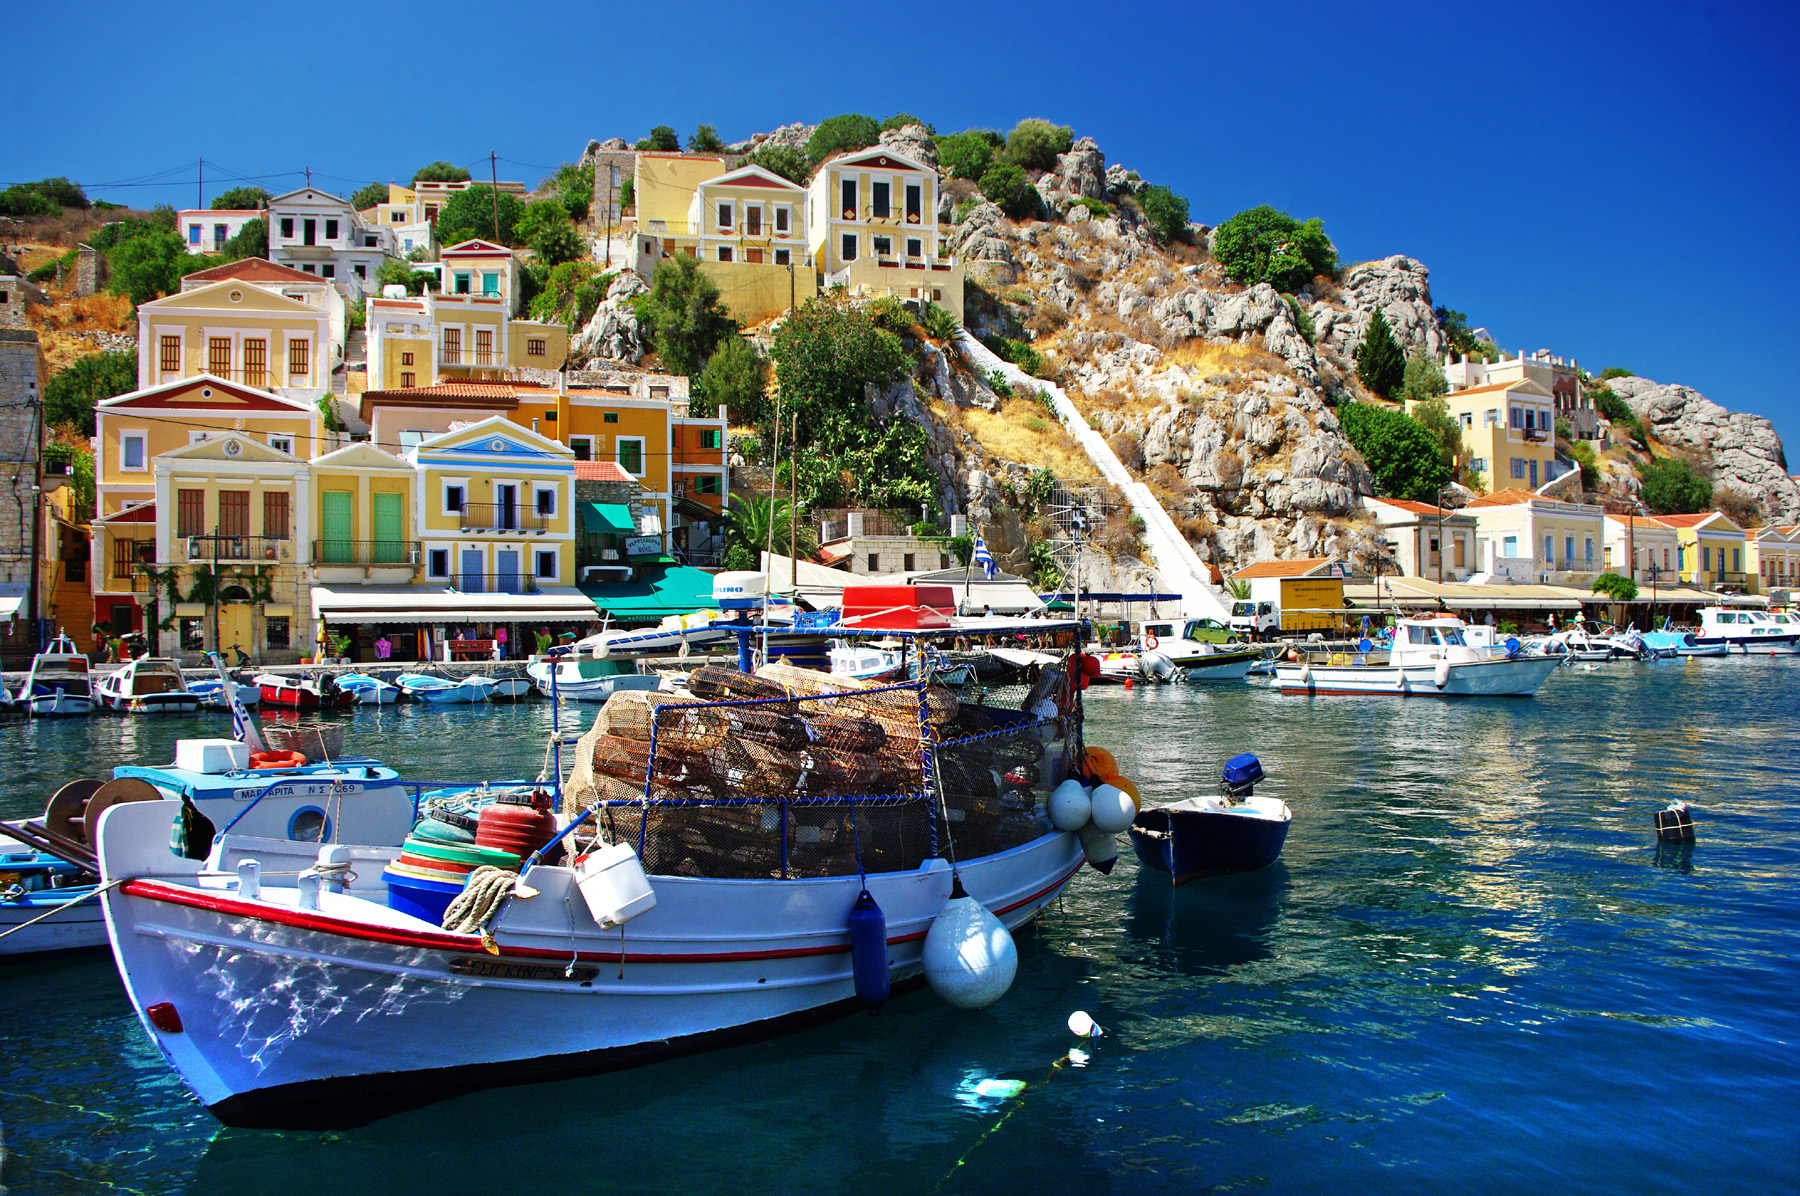 Greek tourism natural scenery in Southern Europe 51081